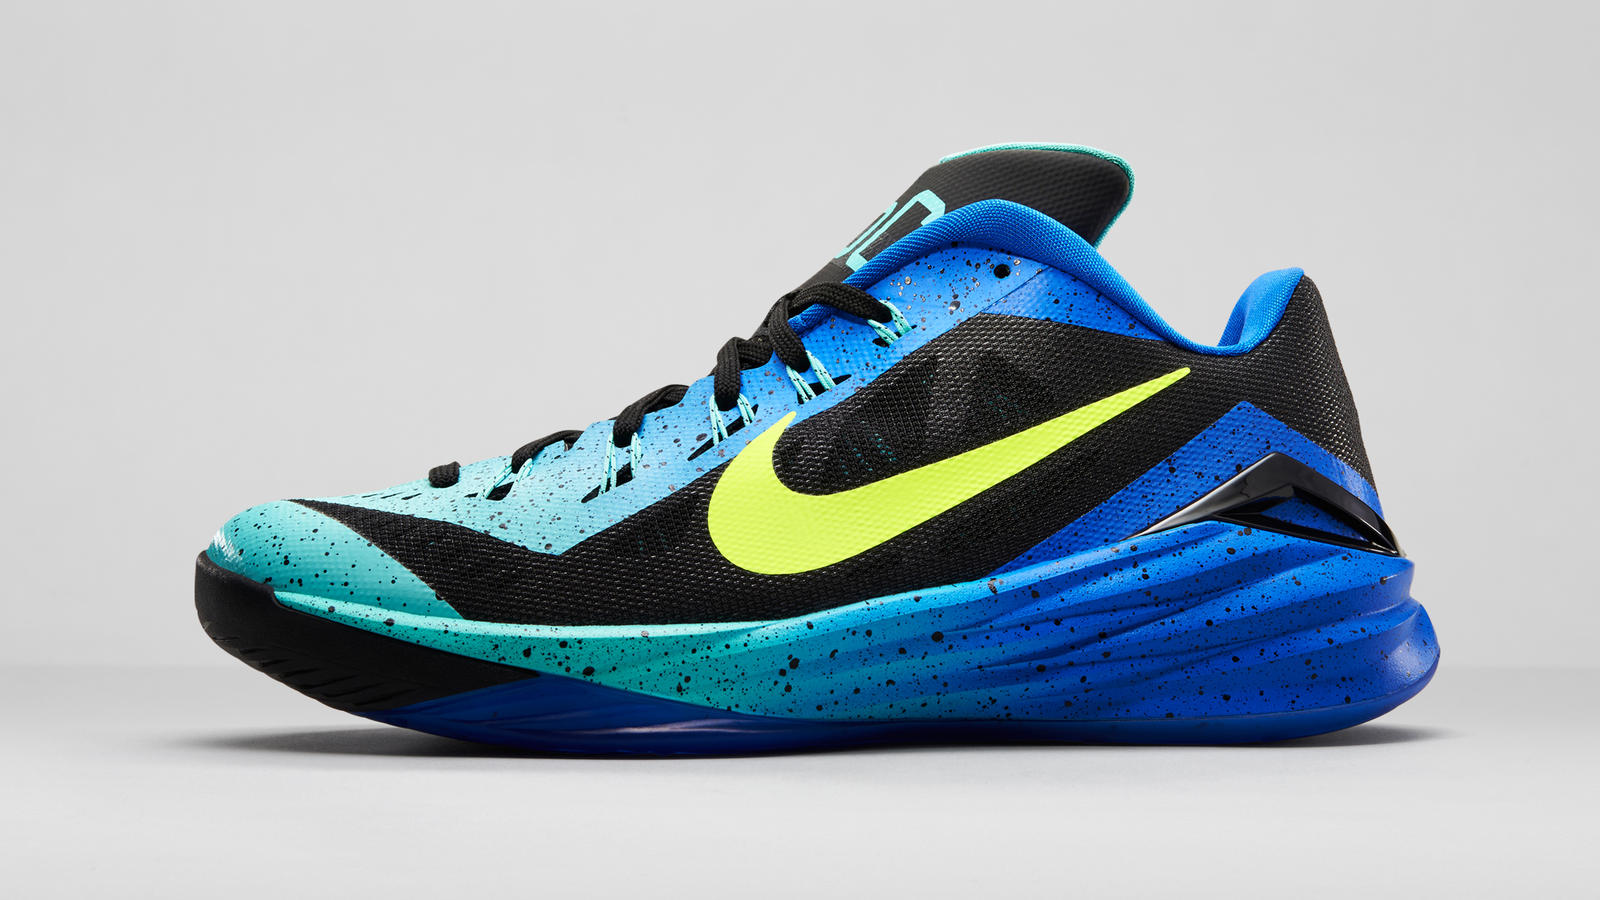 b46902eb5e79 Nike Hyperdunk 2014 City Pack Takes the Court at World Basketball ...